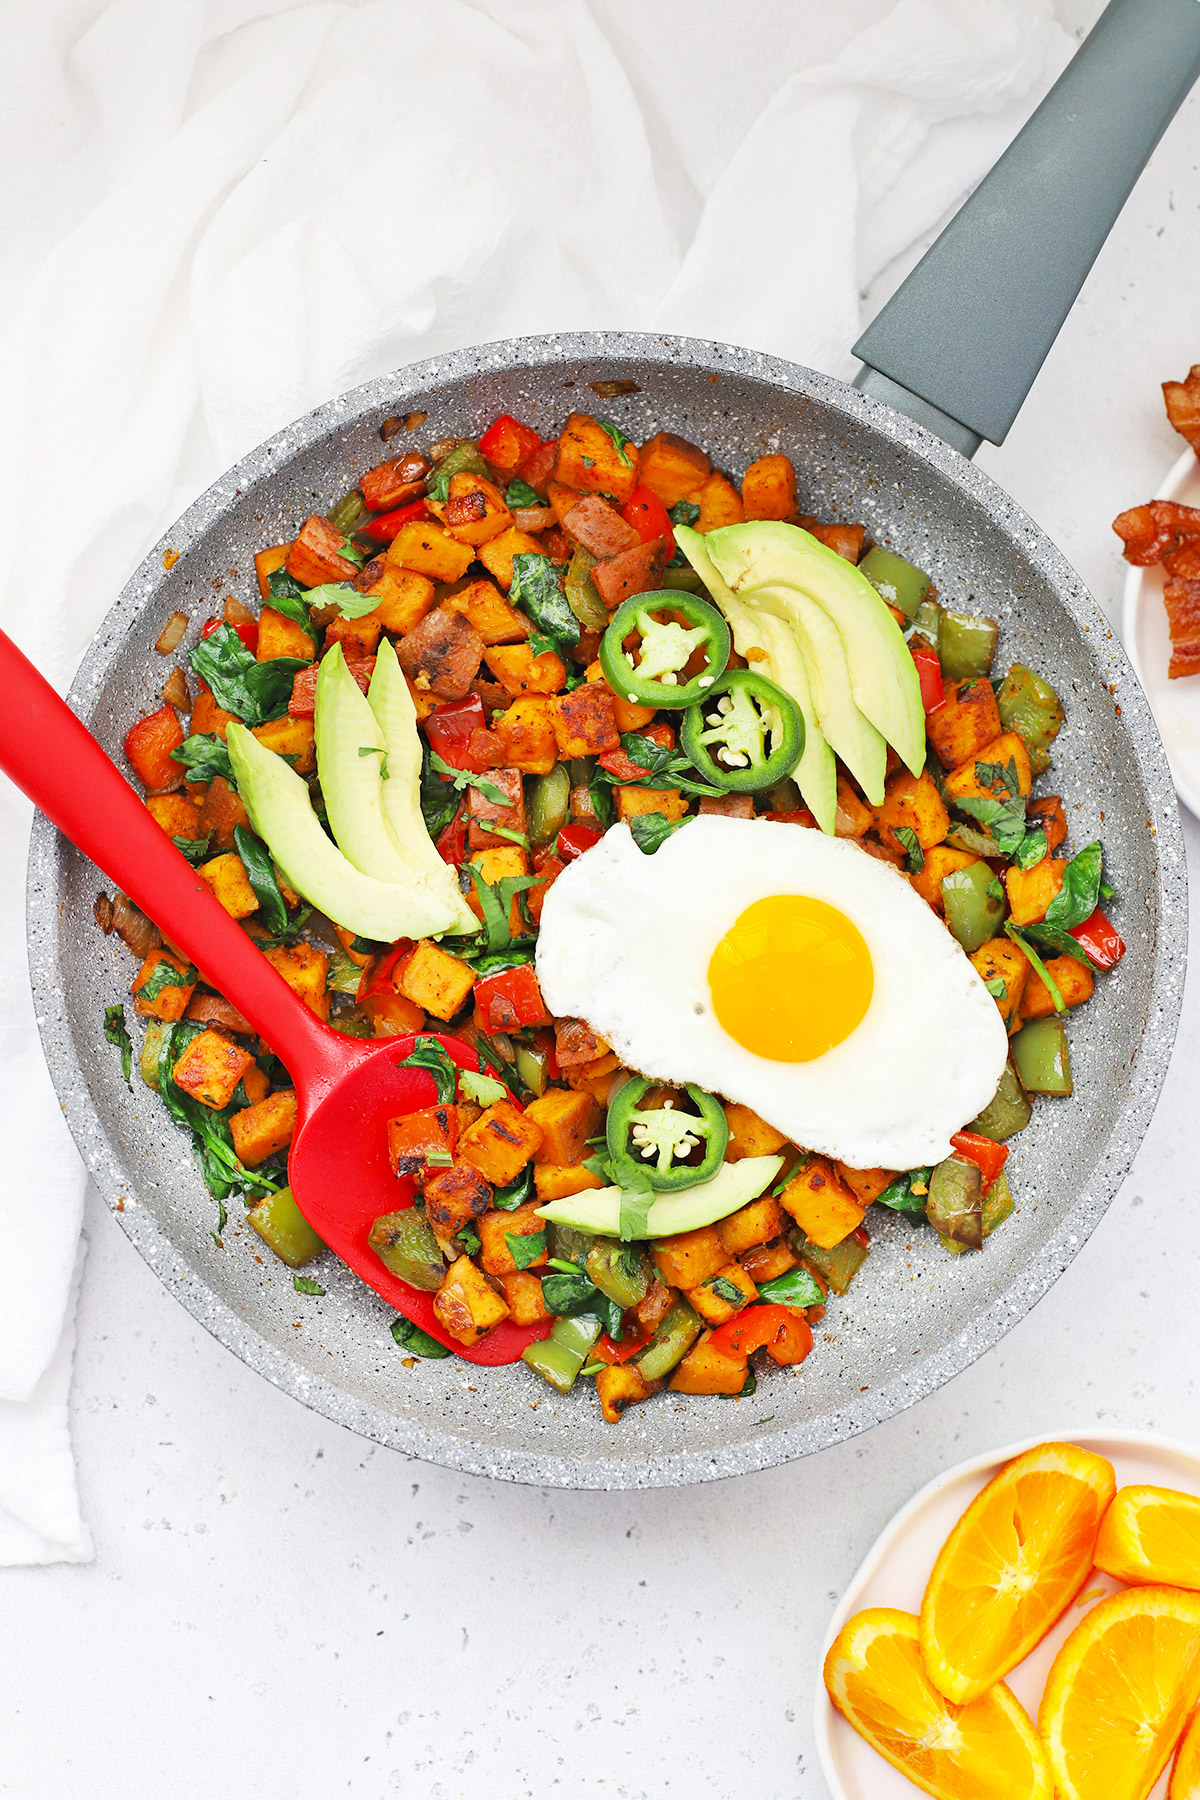 Overhead view of a pan of Paleo Southwest Sweet Potato Hash topped with sliced avocado, jalapeño, and an egg.